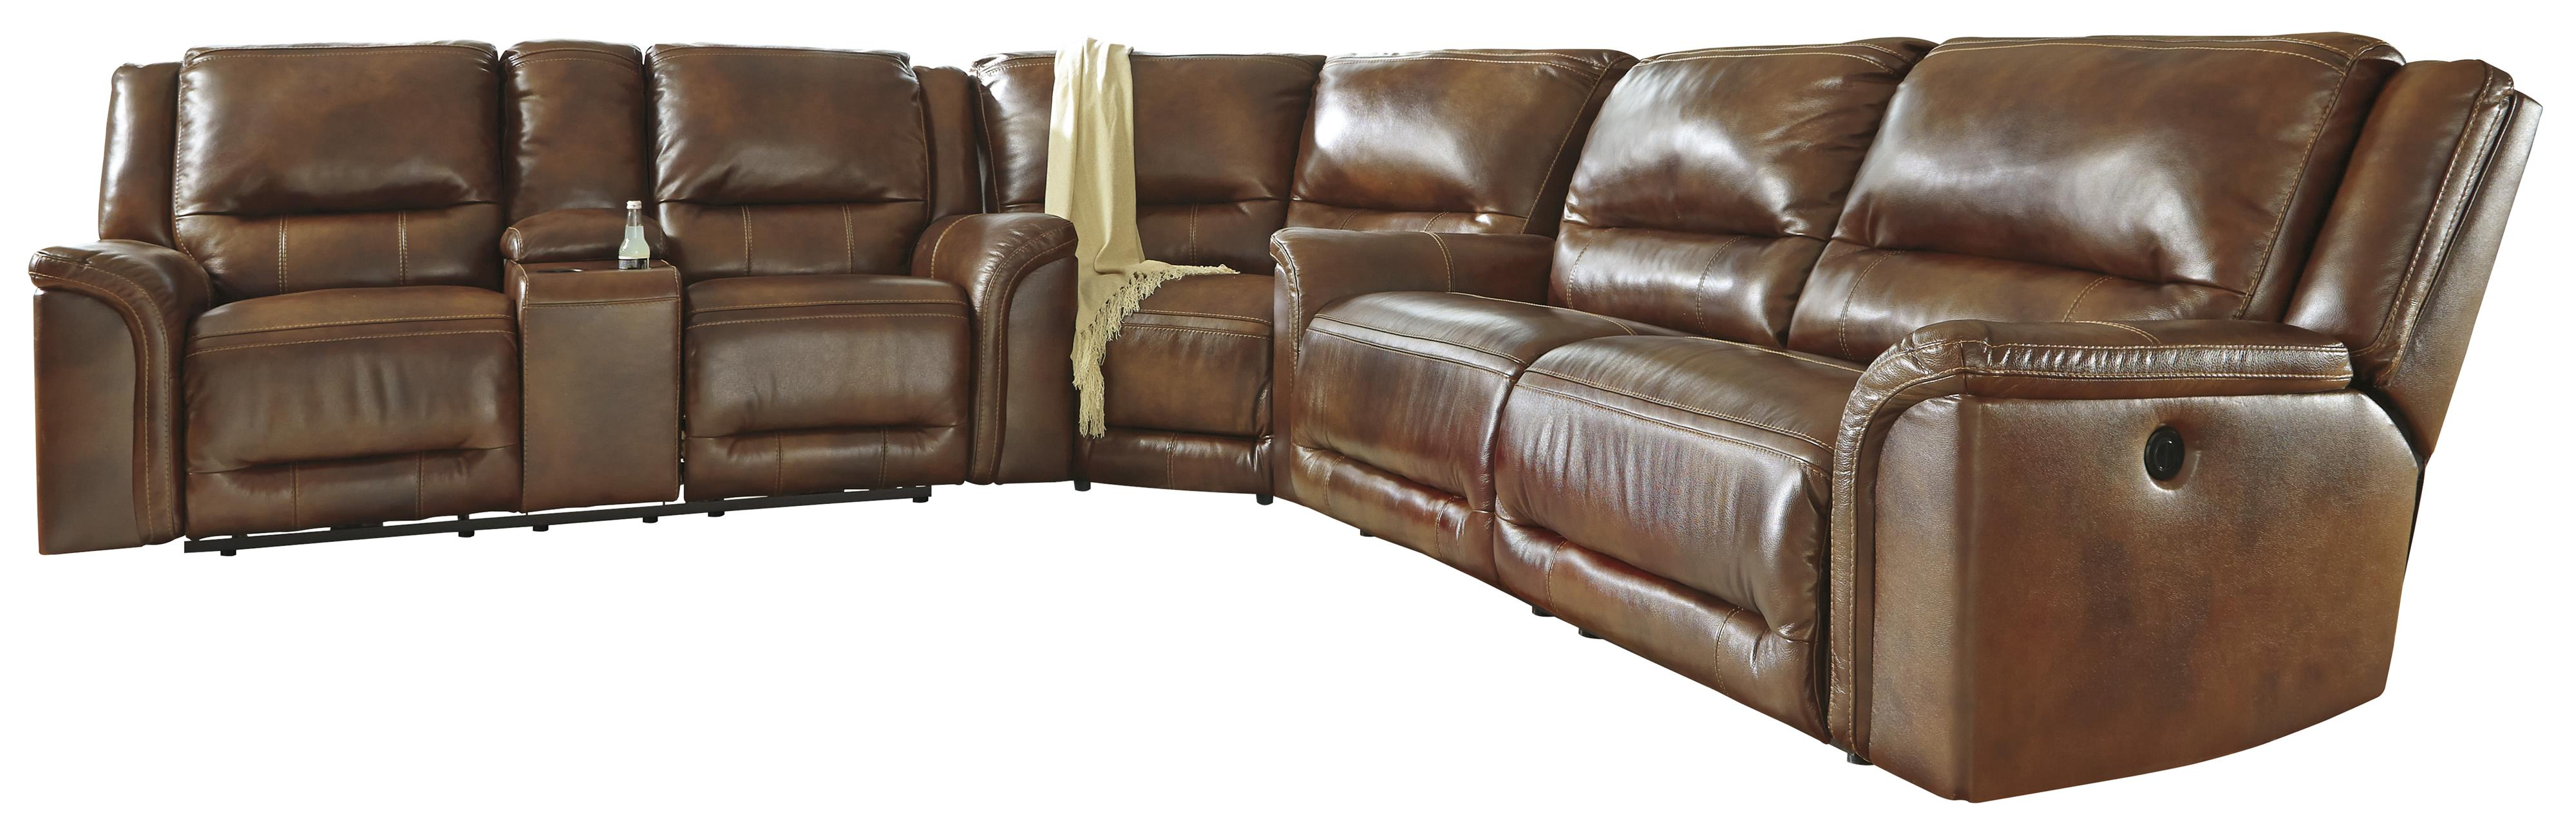 Signature design by ashley jayron contemporary leather for Sectional sofas by ashley furniture